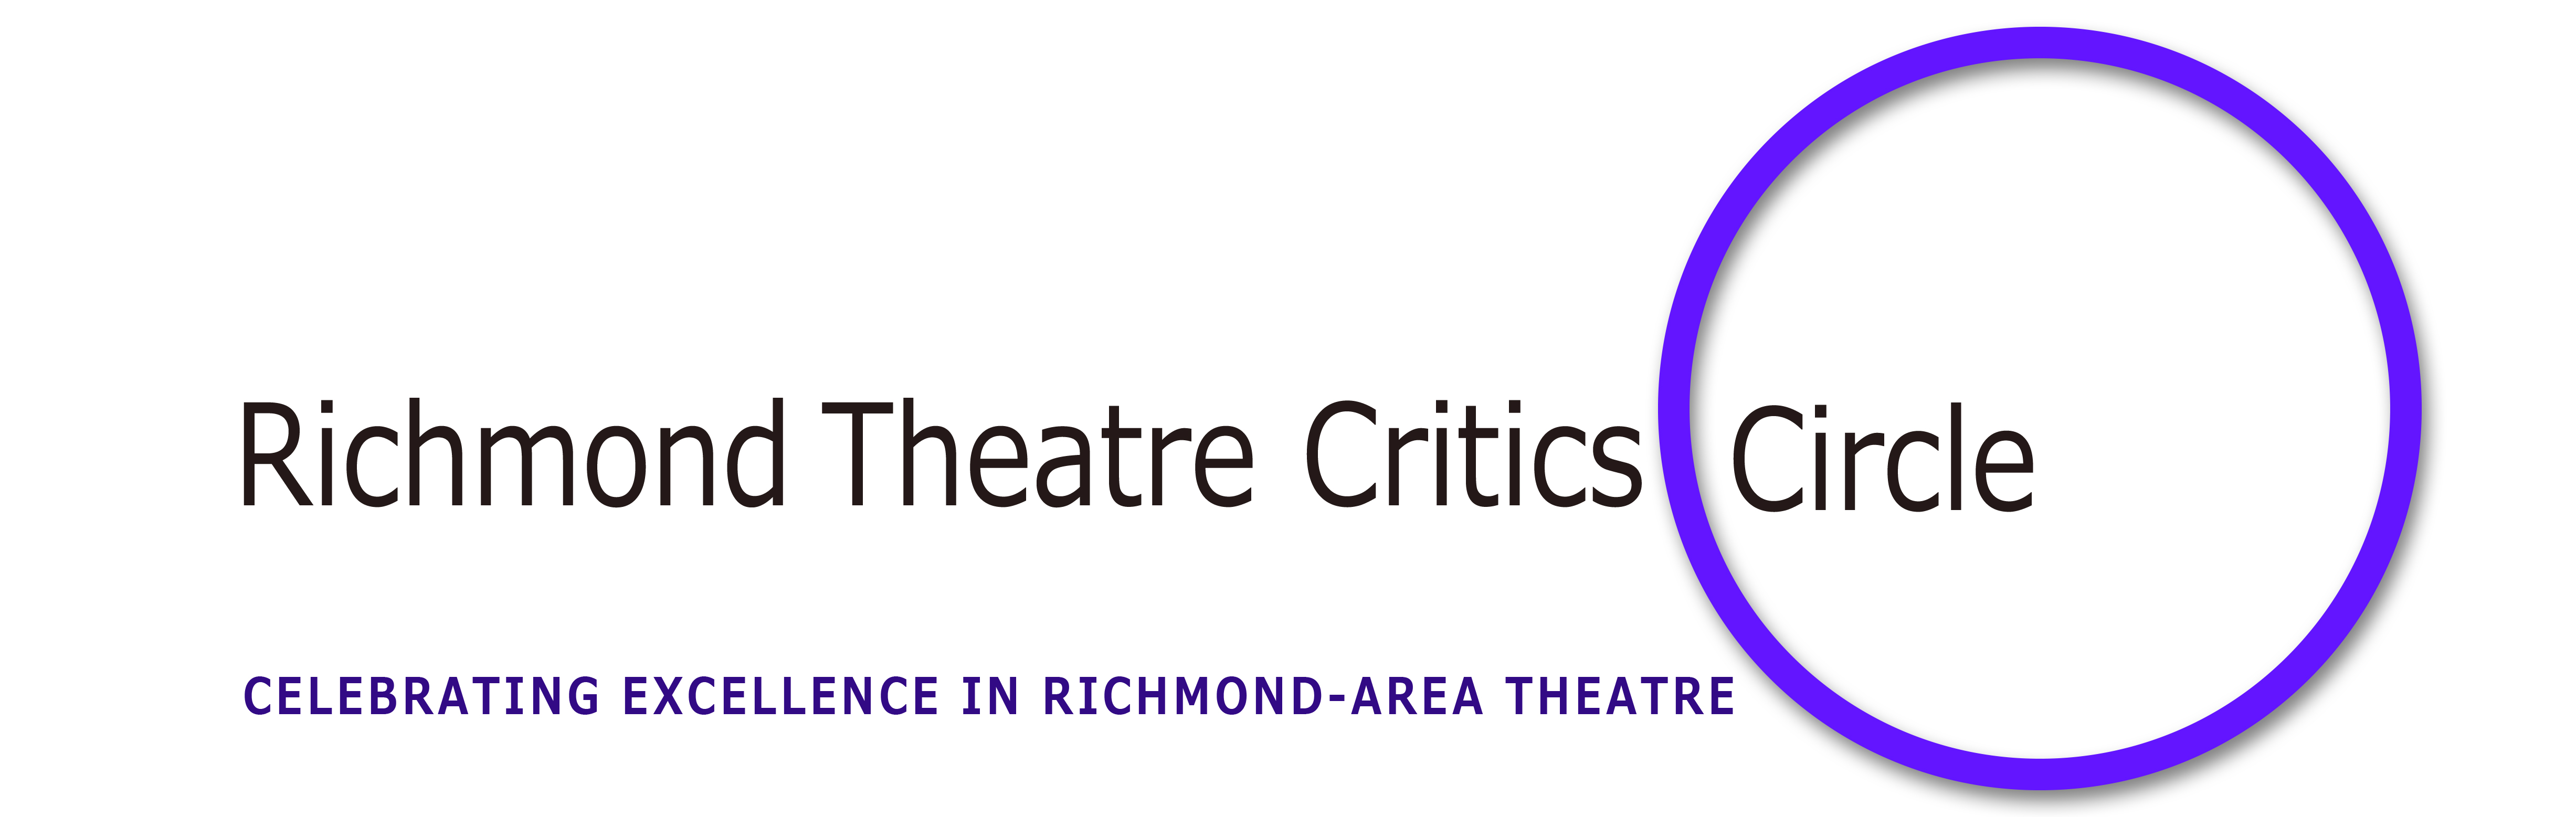 CELEBRATING EXCELLENCE IN RICHMOND-AREA THEATRE